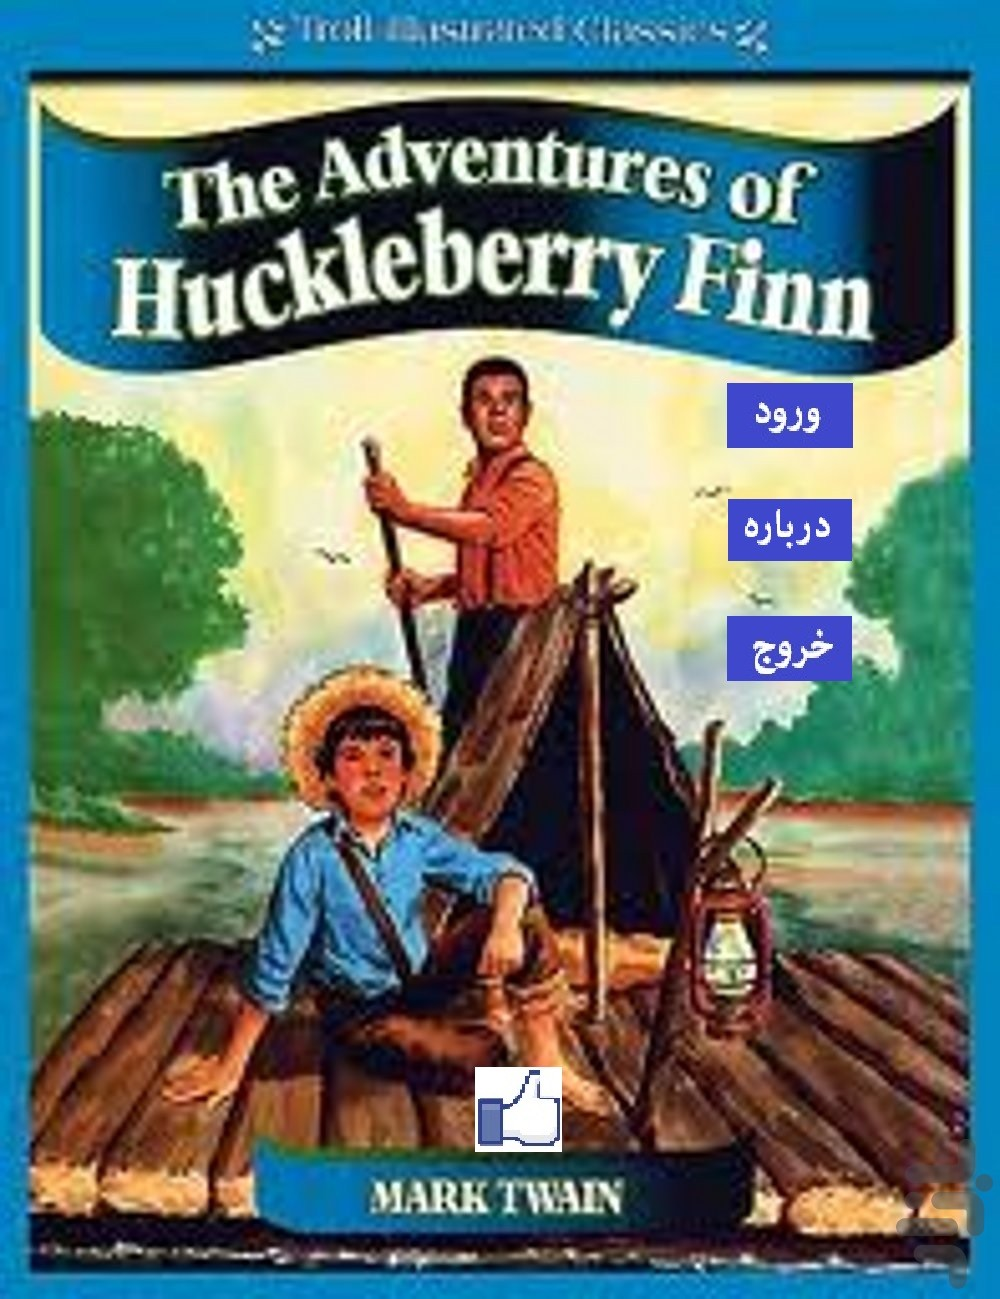 the importance of nature in the adventures of huckleberry finn by mark twain In his novel adventures of huckleberry finn, mark twain conveys his high regard for nature through the use of several rhetorical devices such as personification and tone.